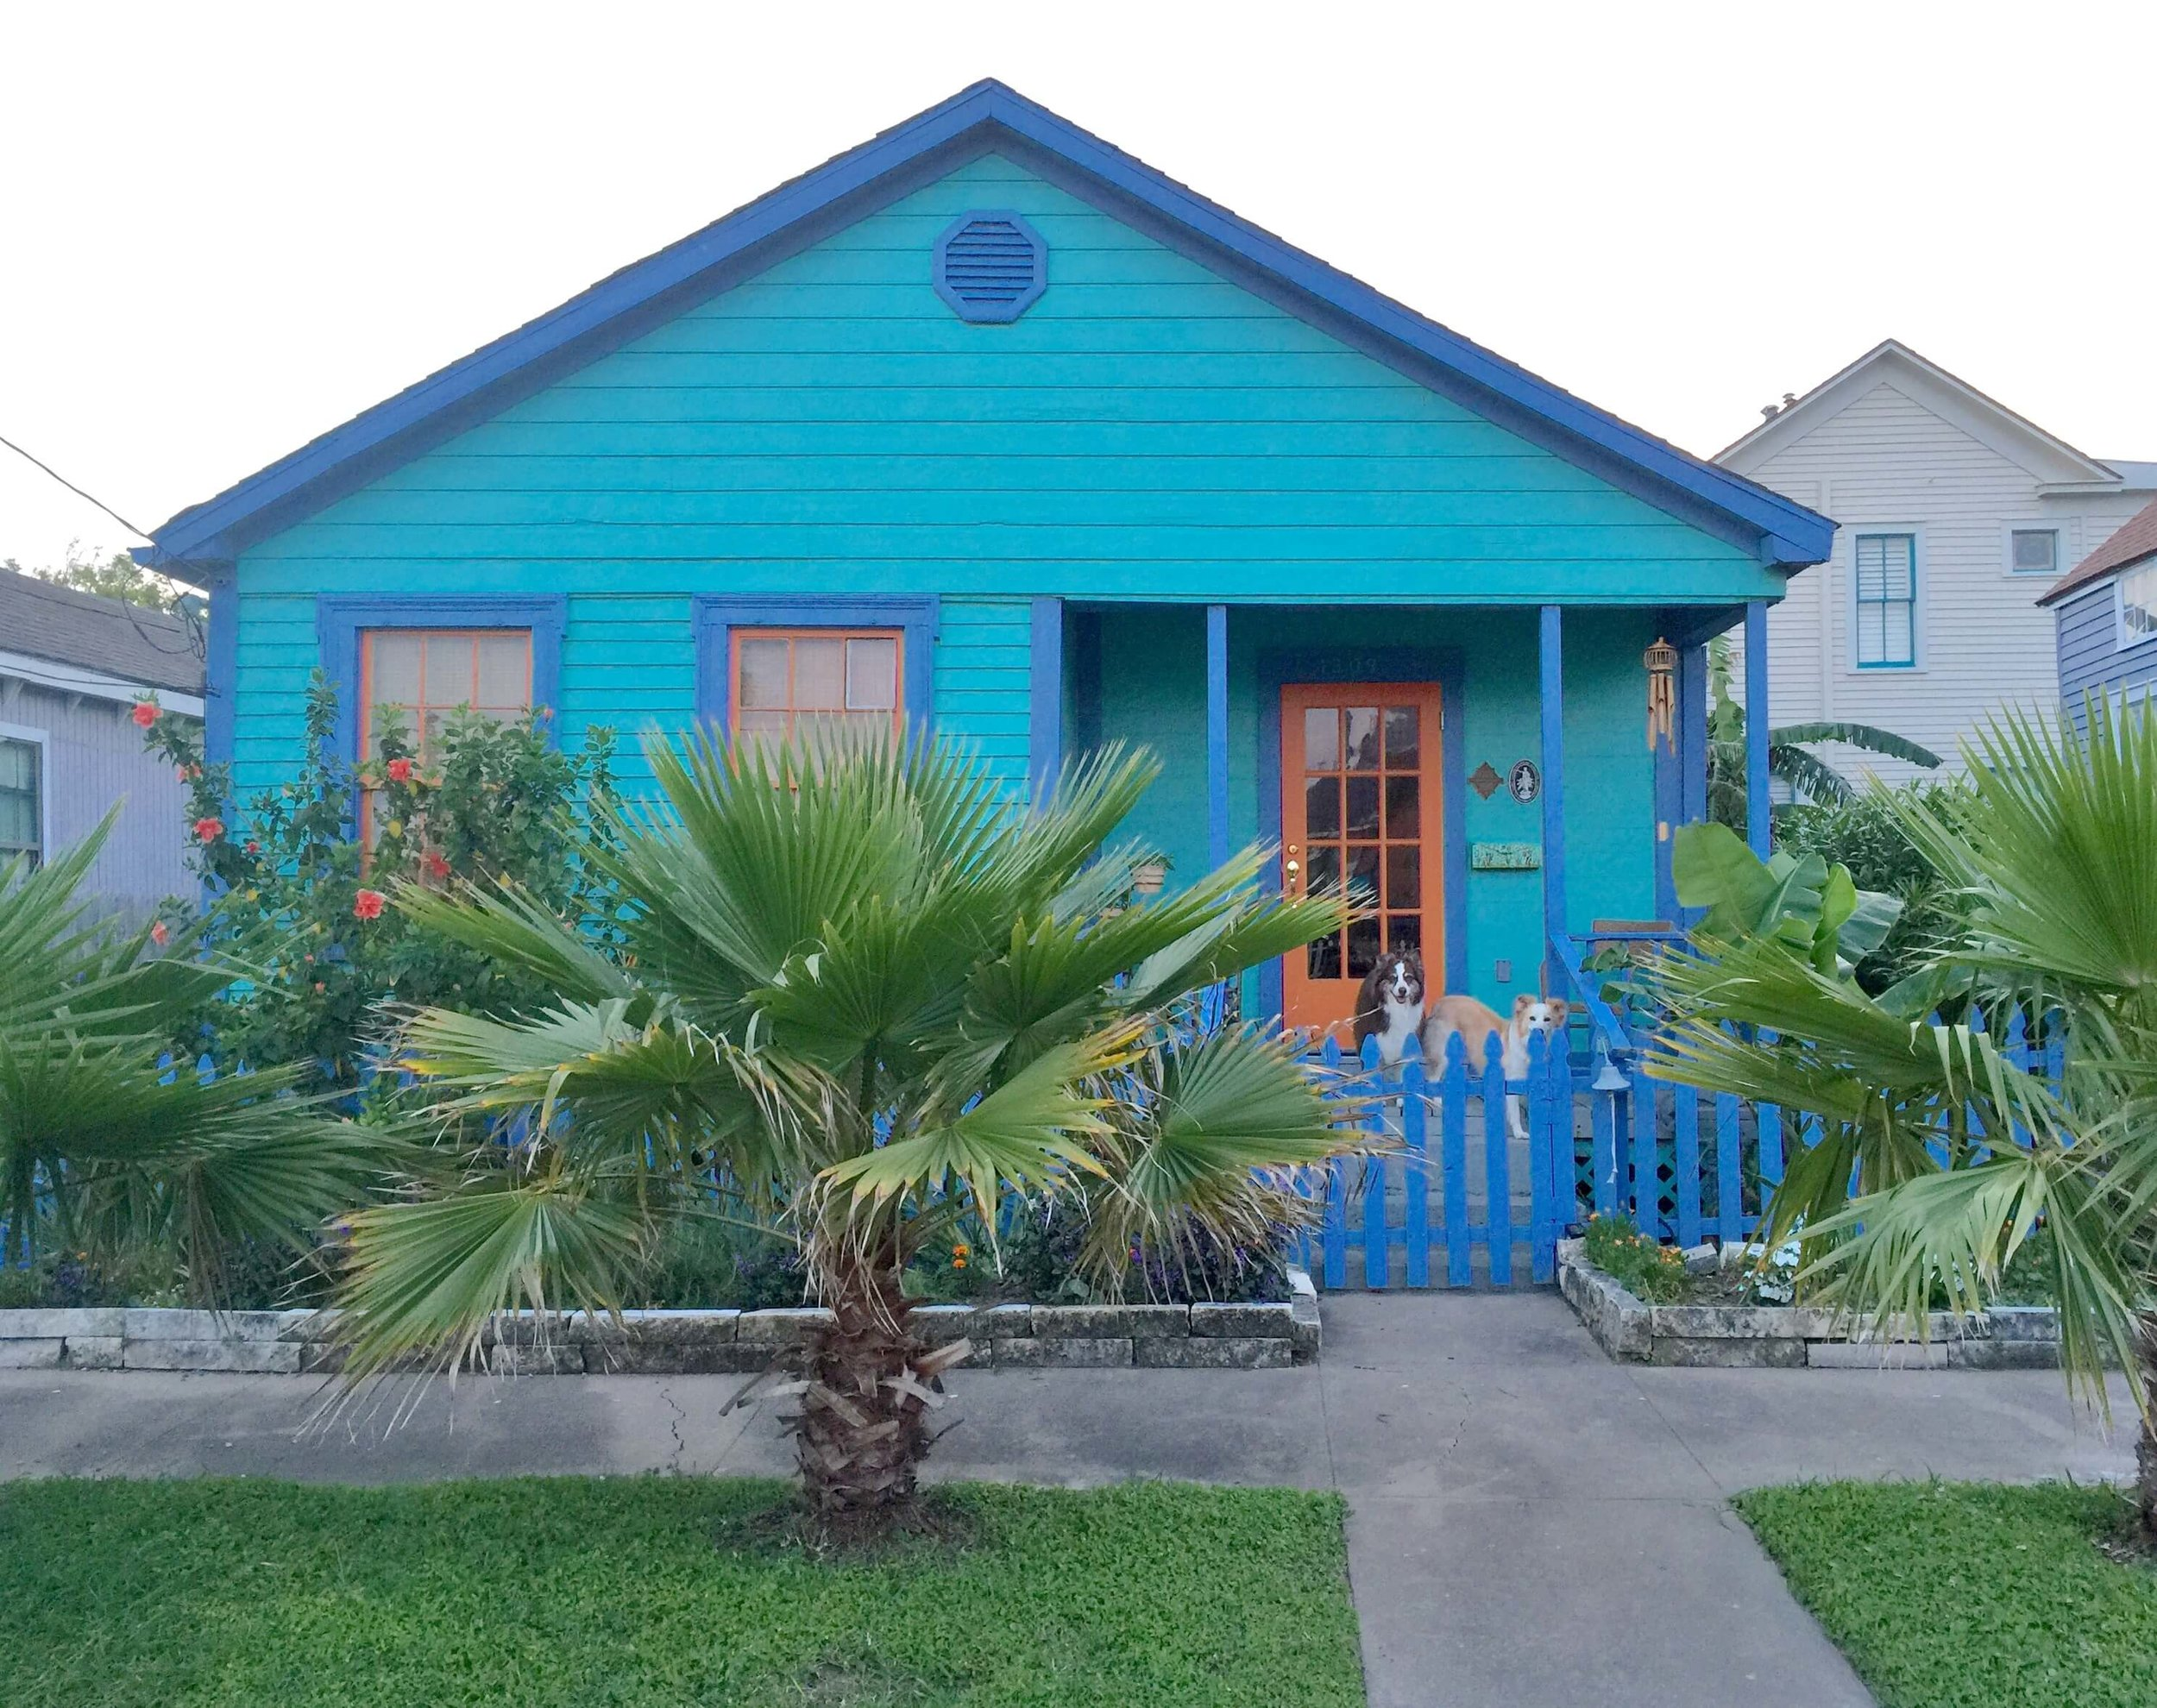 Exterior - Historic Galveston beach cottage |Susan Fox, Designer/Homeowner #galveston #beachcottage